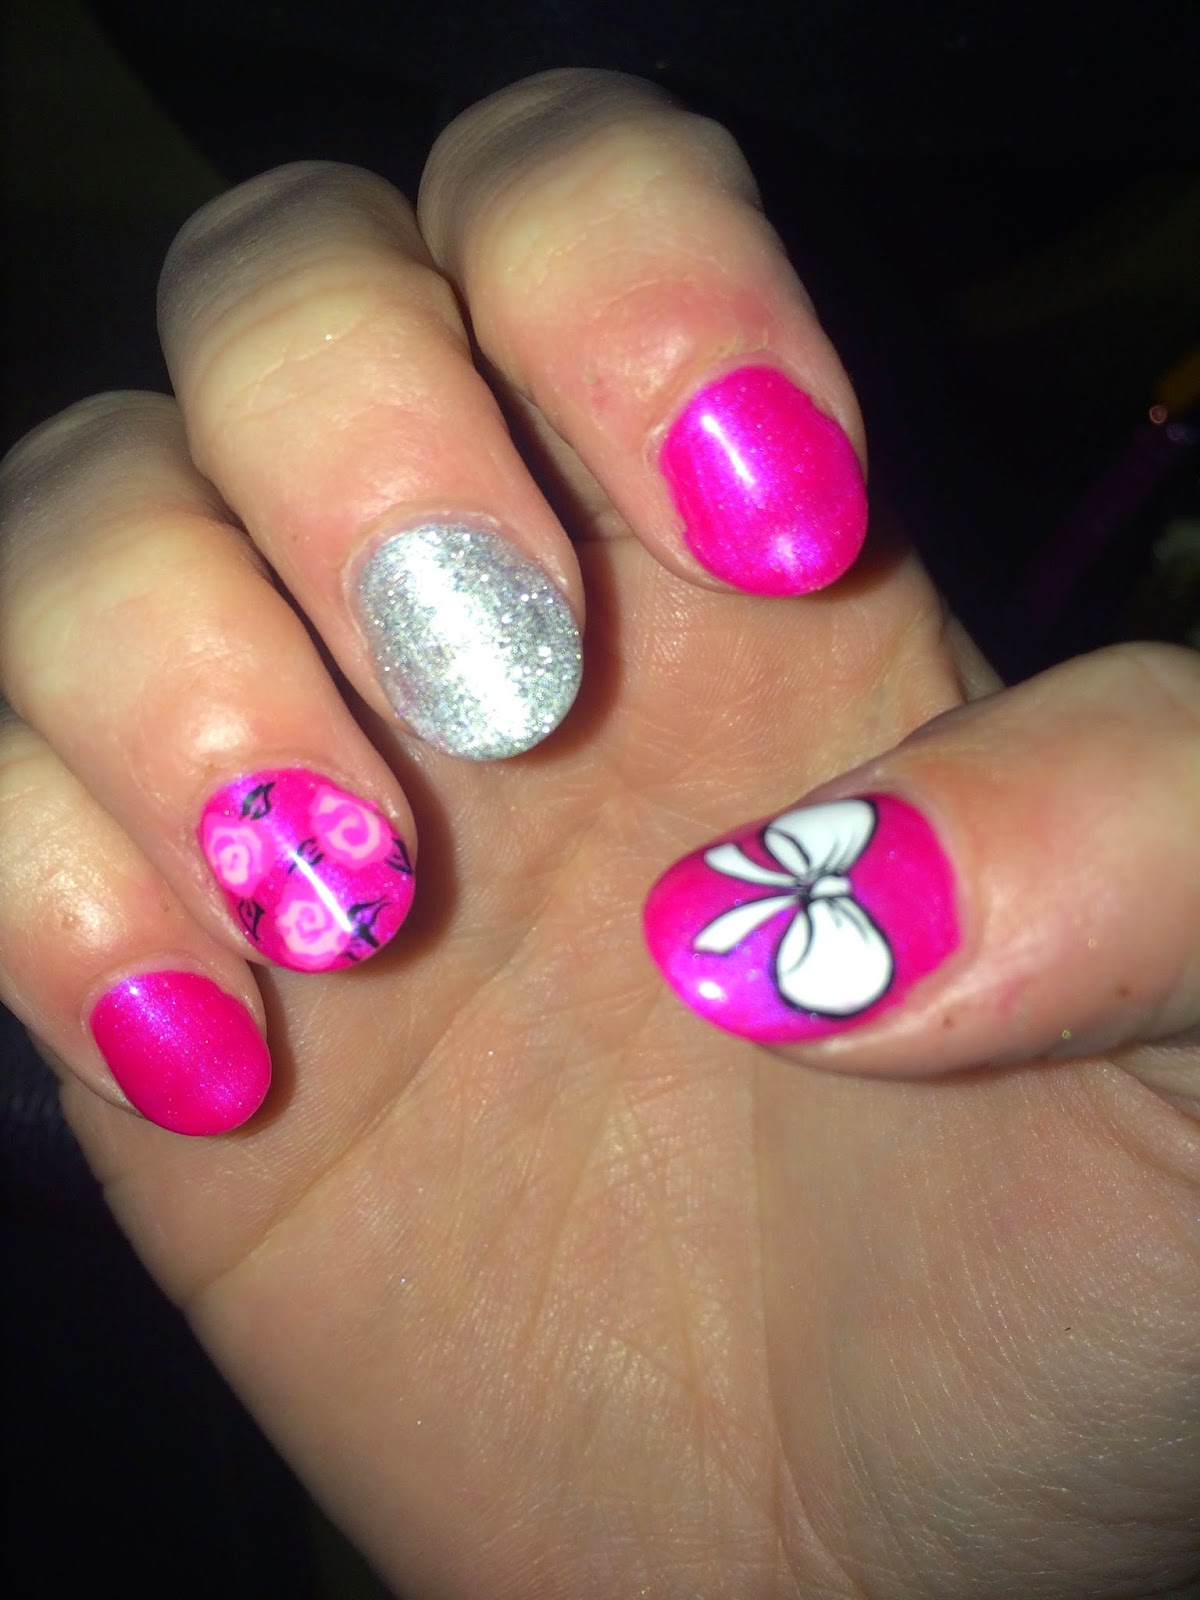 The Girliest Nails! | Ashley\'s Passion for Fashion